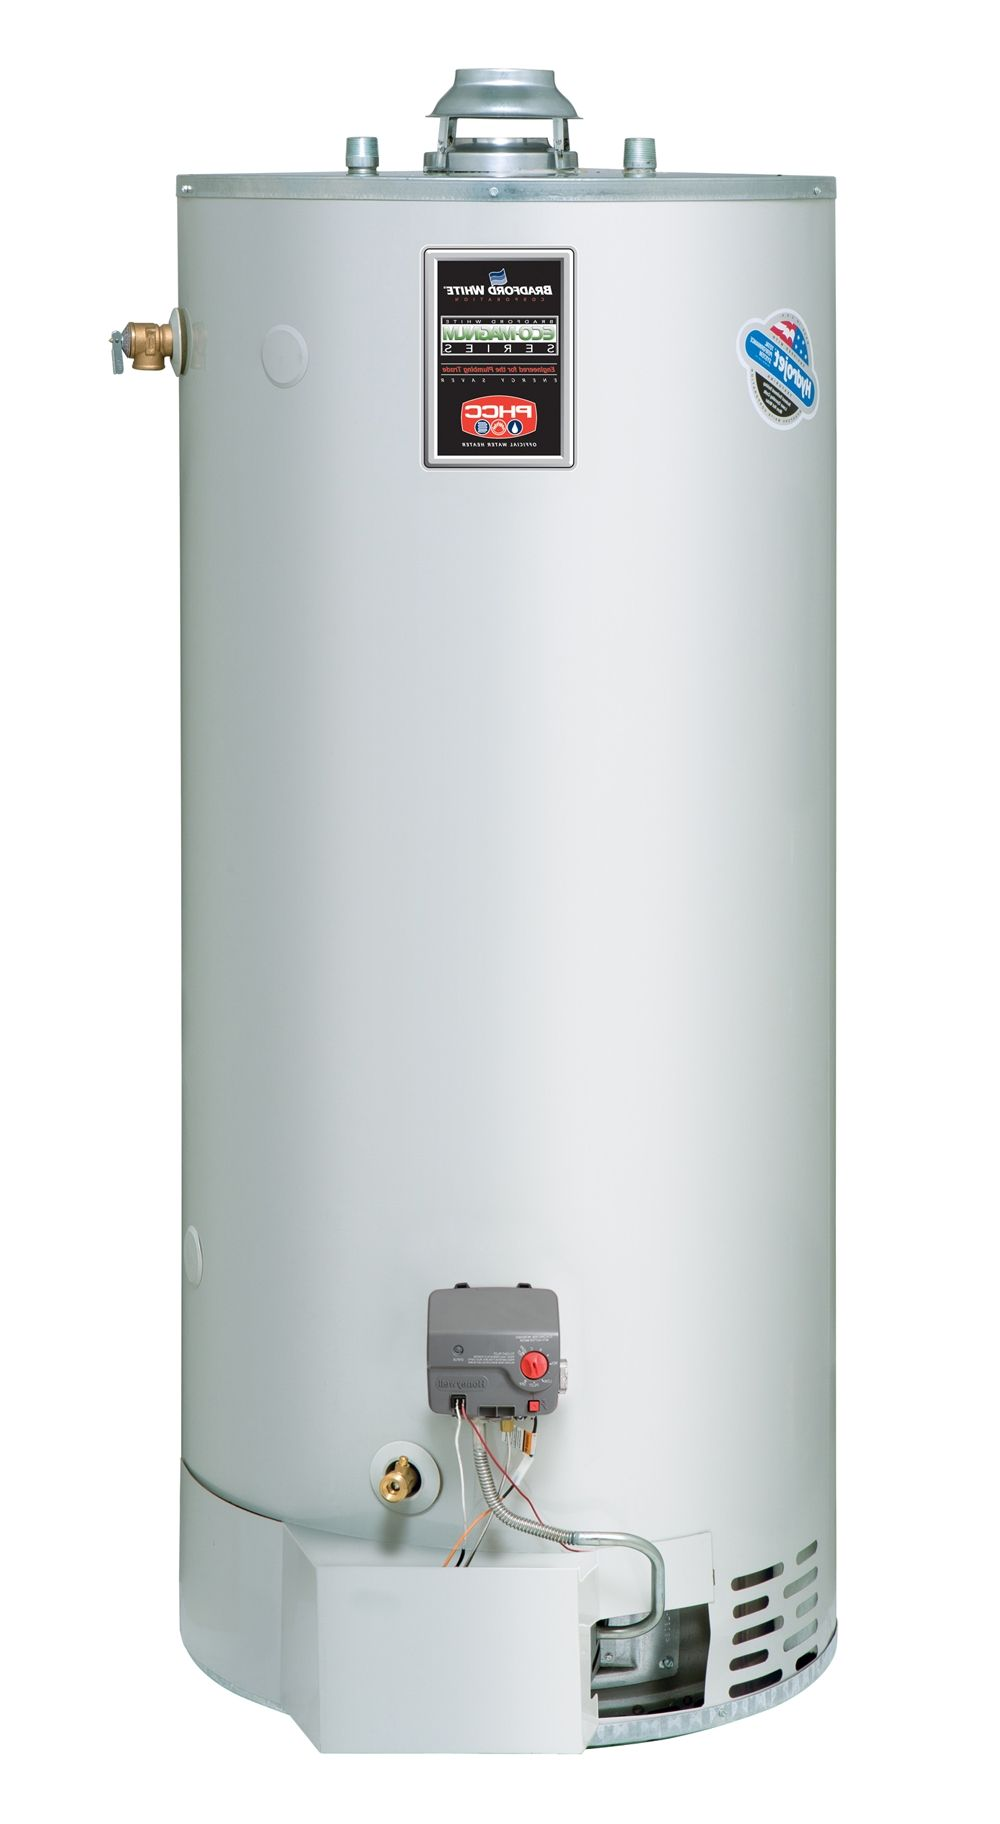 Bradford White 50 Gallon Gas Hot Water Heater